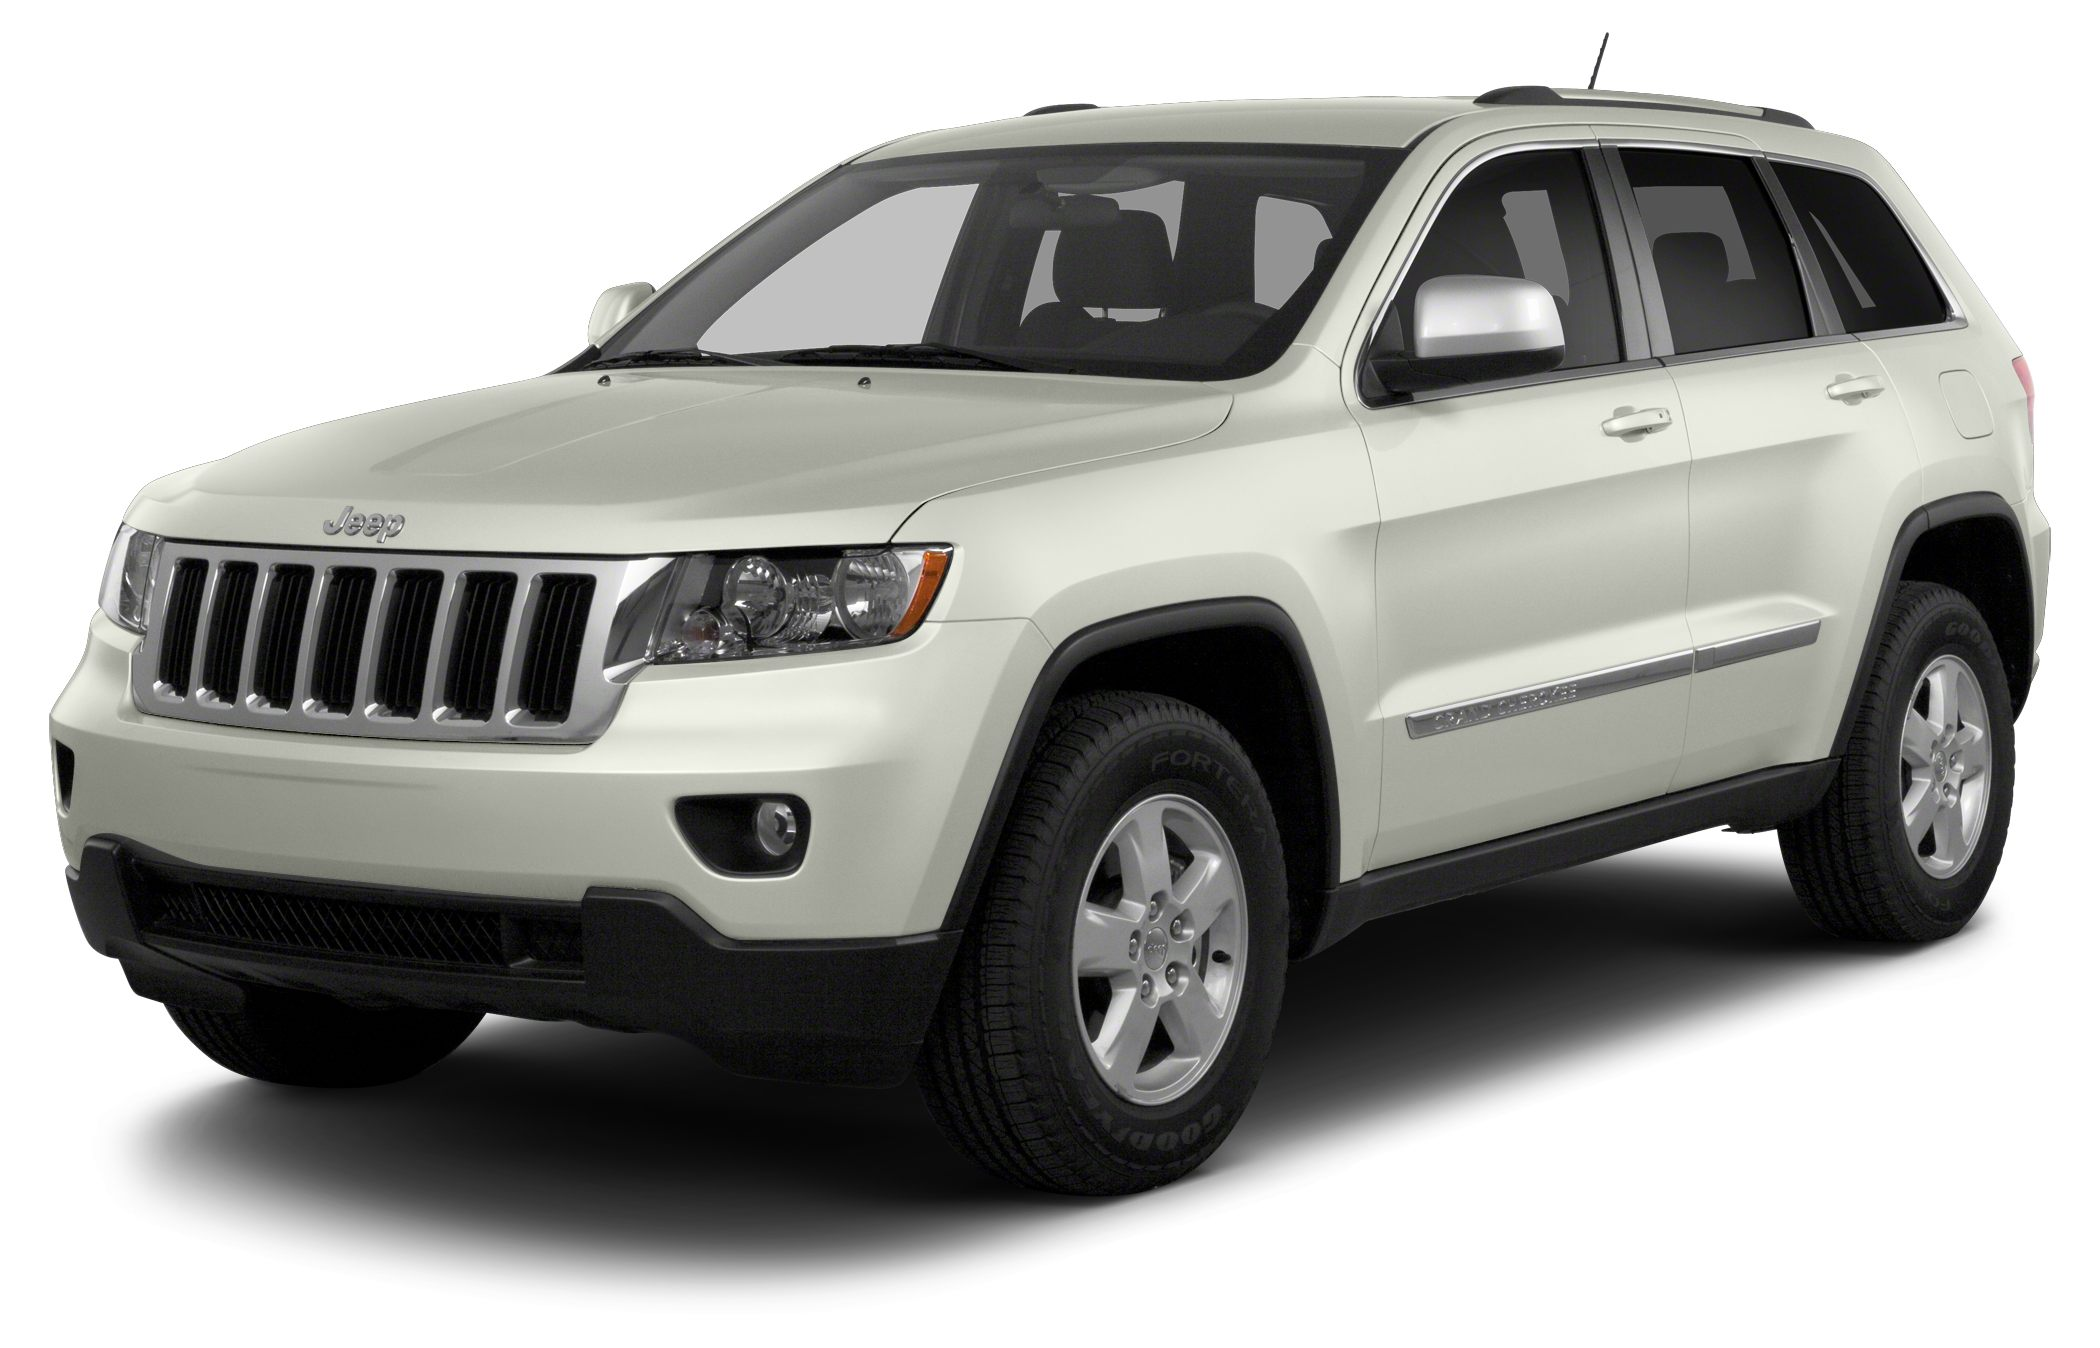 2013 Jeep Grand Cherokee Laredo Laredo trim Very Nice ONLY 20453 Miles Heated Leather Seats N